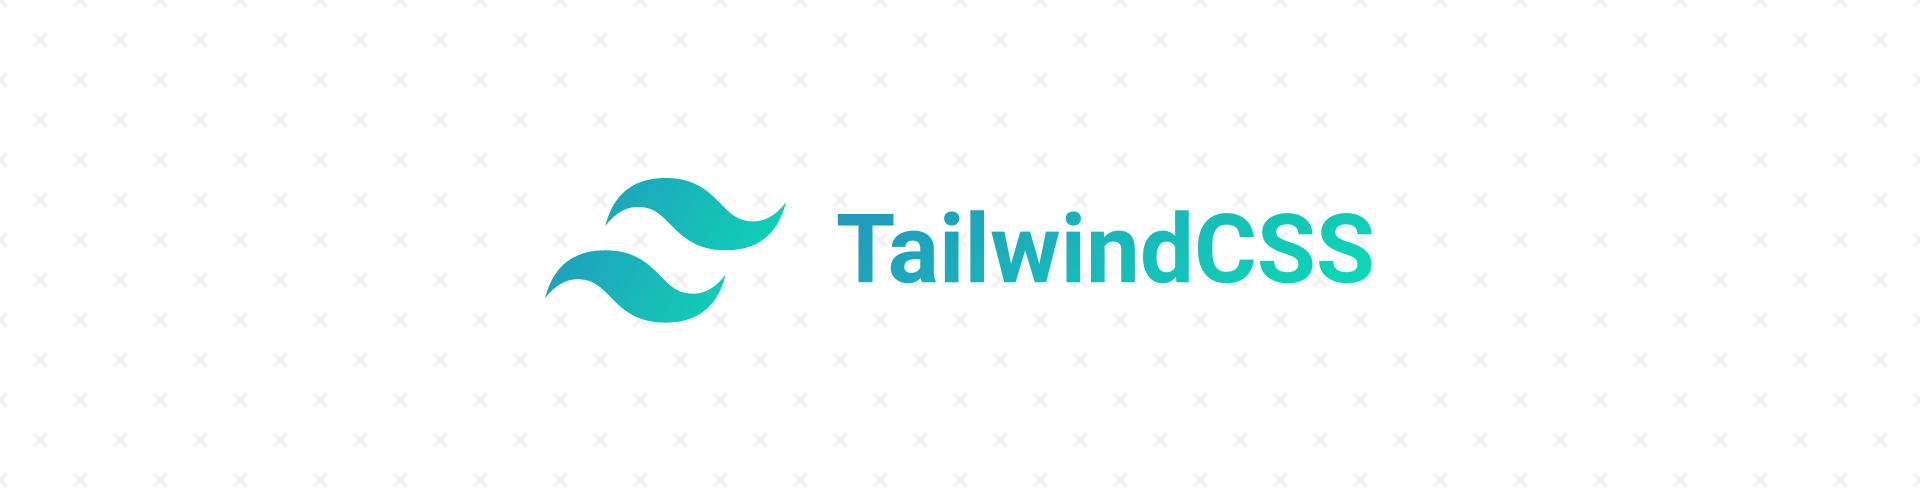 Why do we use Tailwind CSS and less Bootstrap?